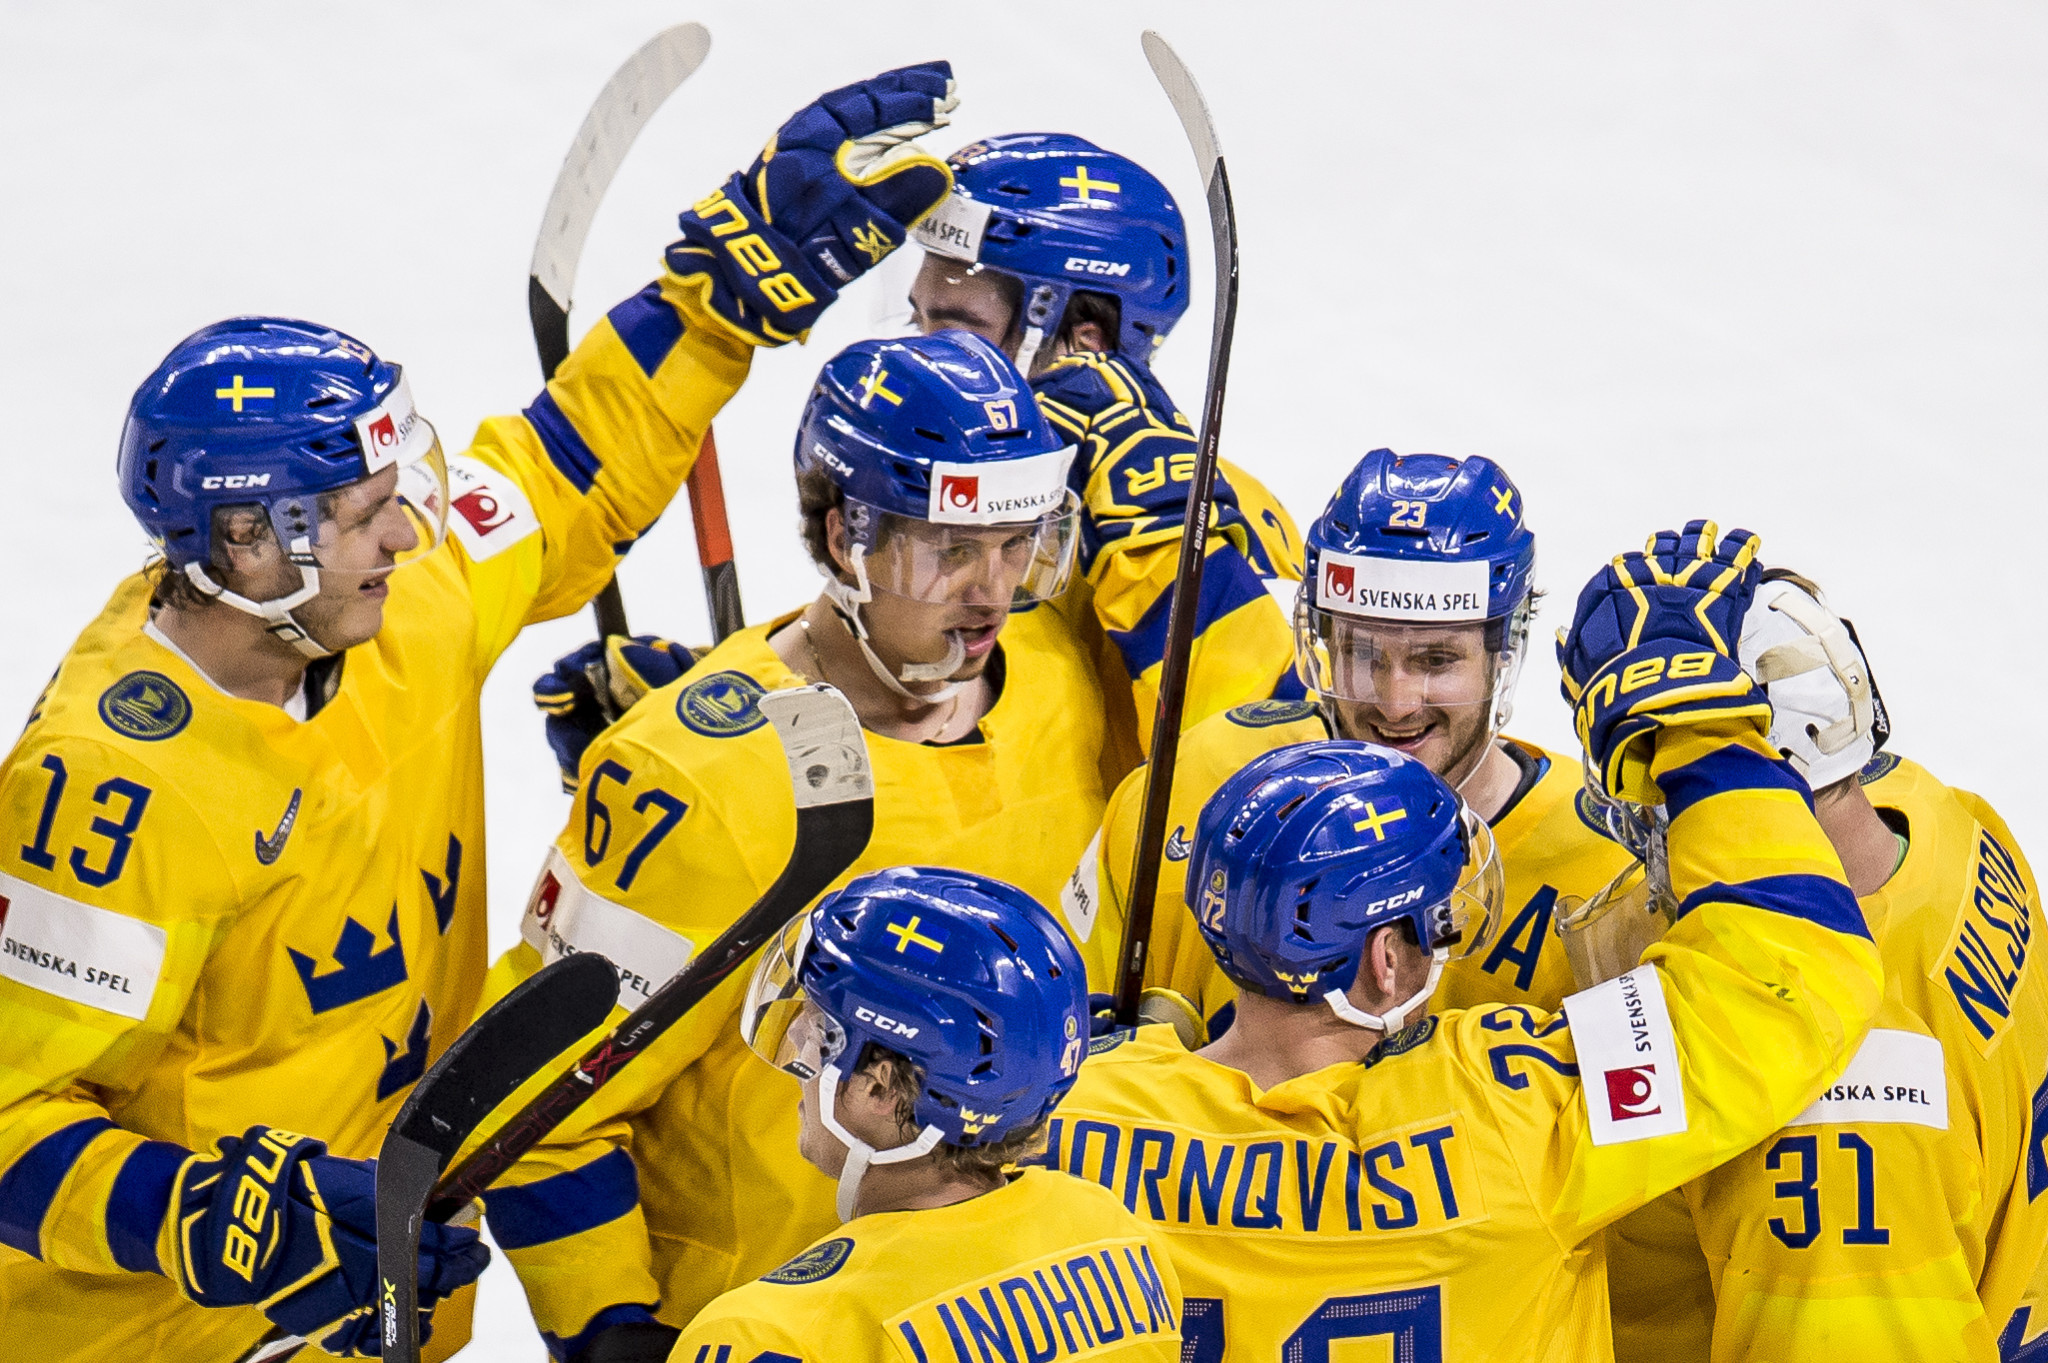 Sweden come from behind to beat Russia and top Group A at IIHF World Championship